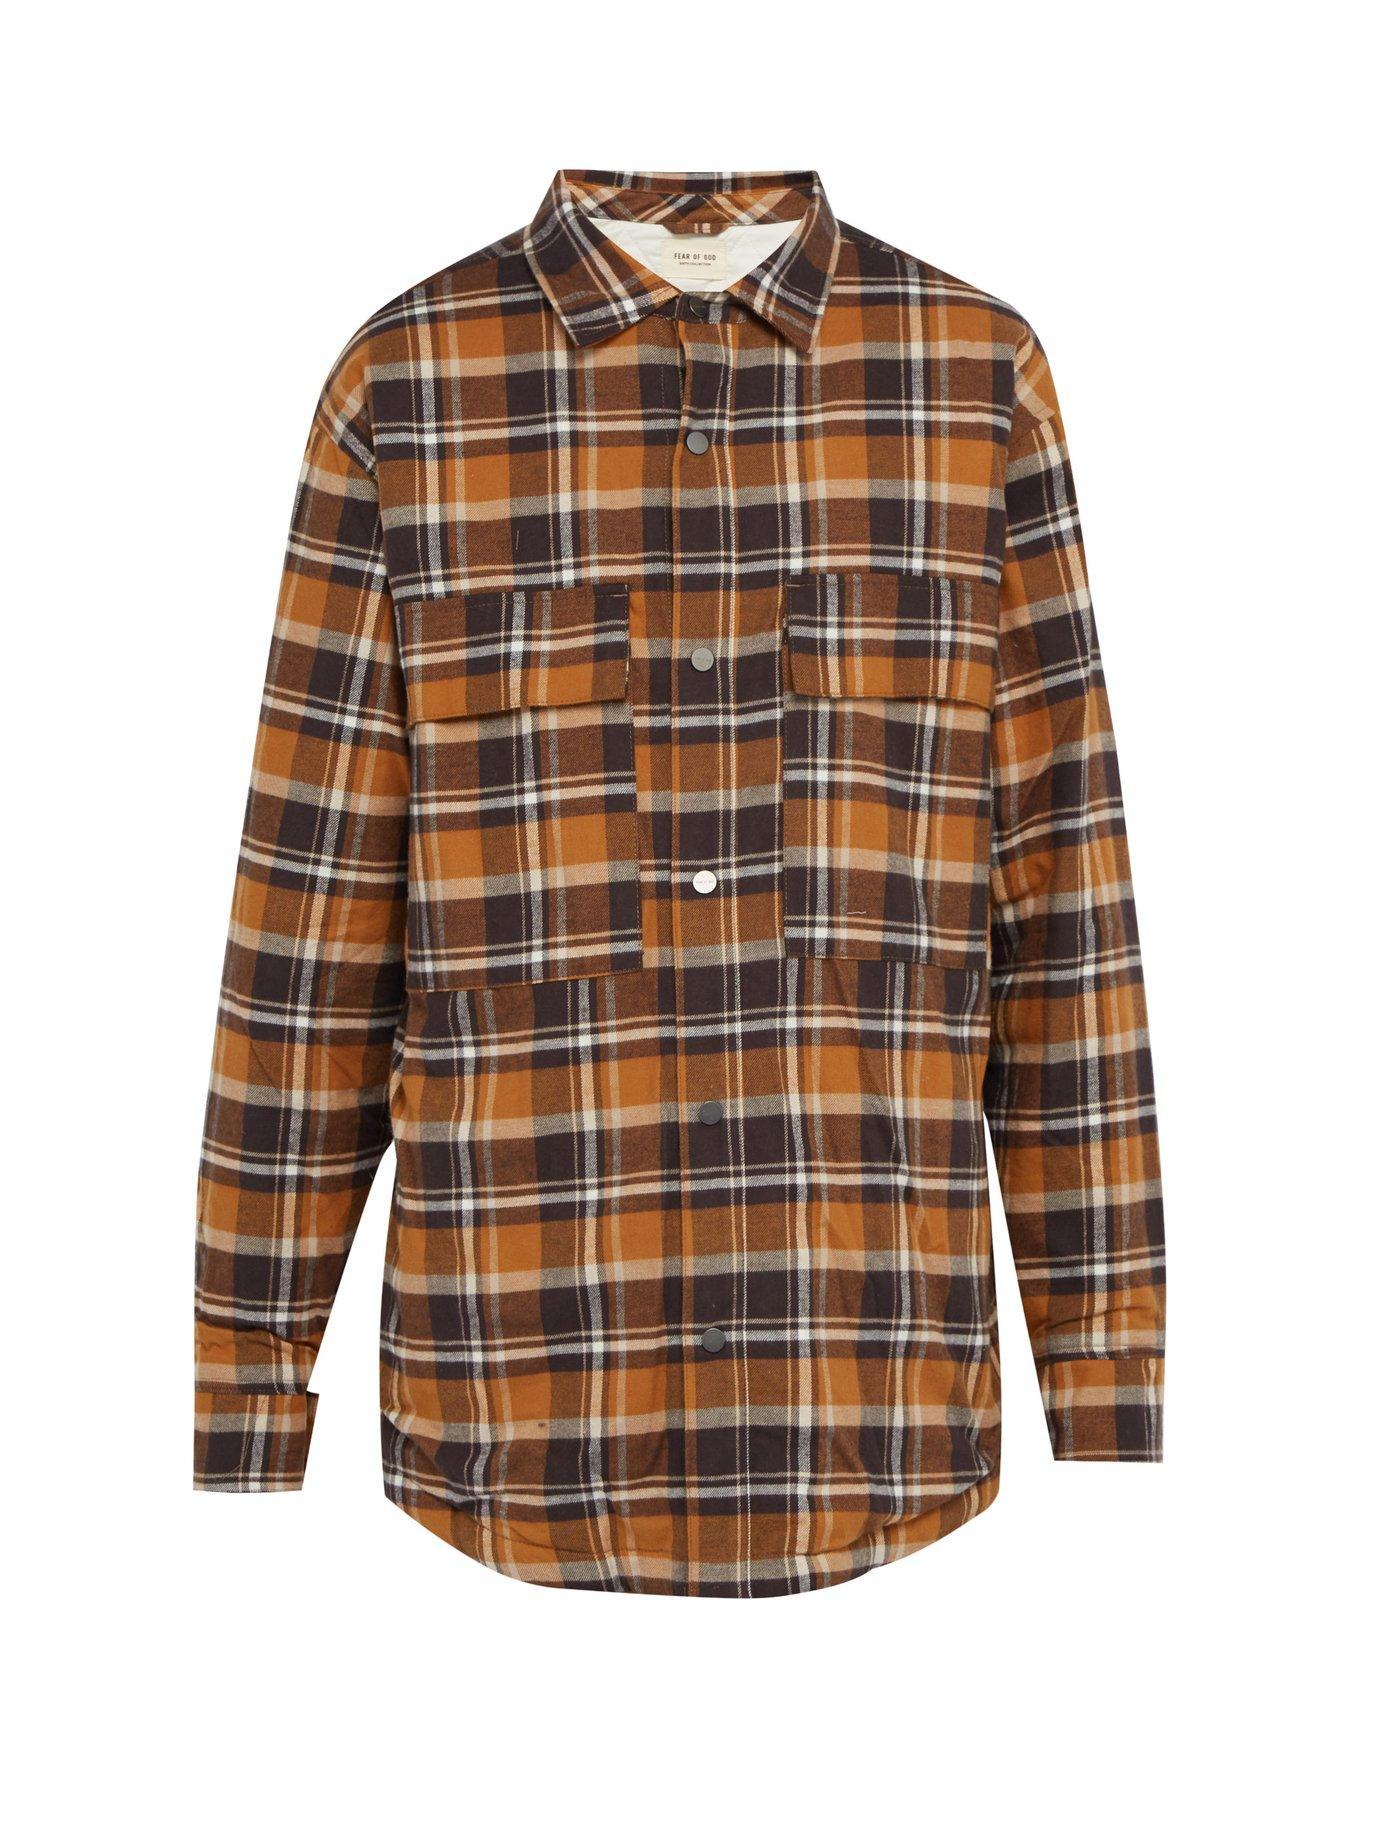 274df531c8 Lyst - Fear Of God Checked Flannel Overshirt in Brown for Men